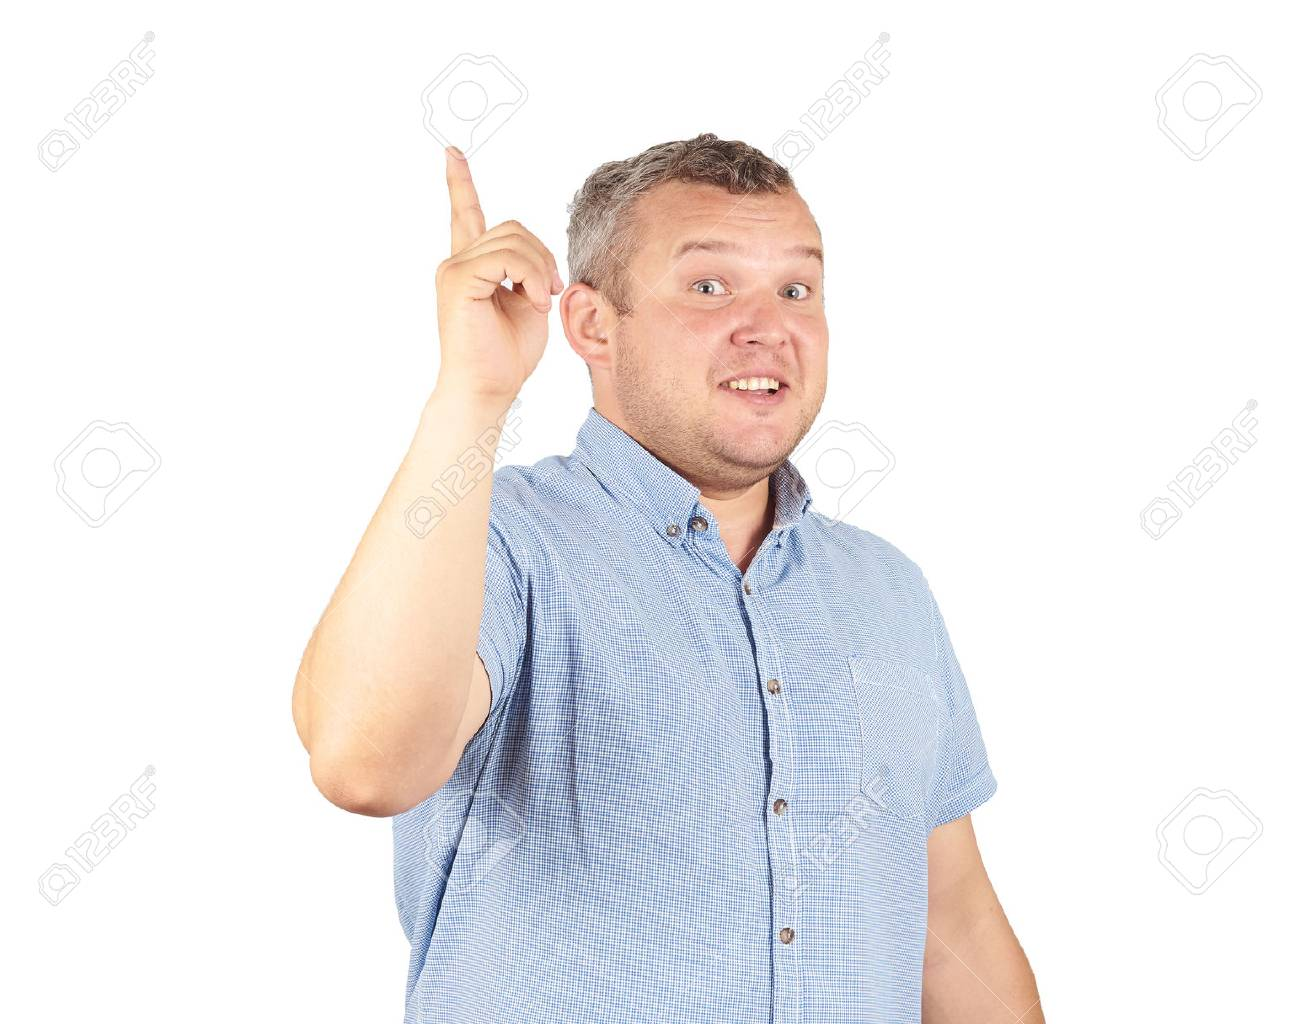 Portrait of a man came up with the idea and holding thumbs up. Solution. facial expression, body language, creativity Isolated on white background. - 63759883